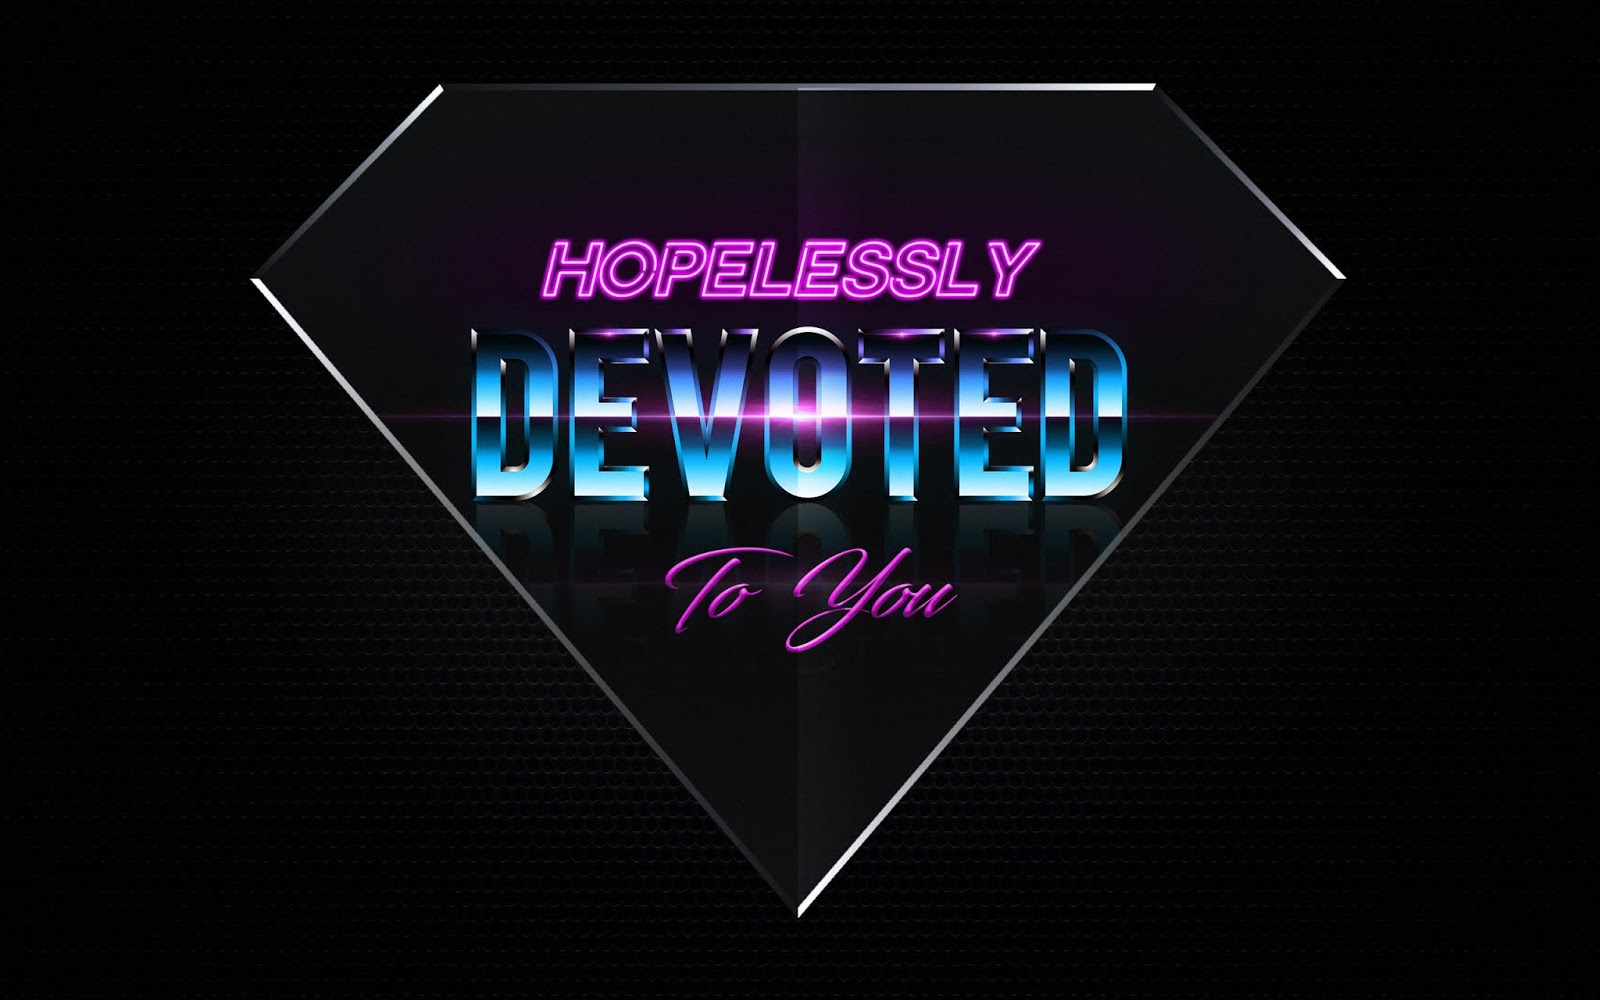 Devoted To You, Hopeless, Neon Art, Synthwave, Retrowave, Love Quotes, Love